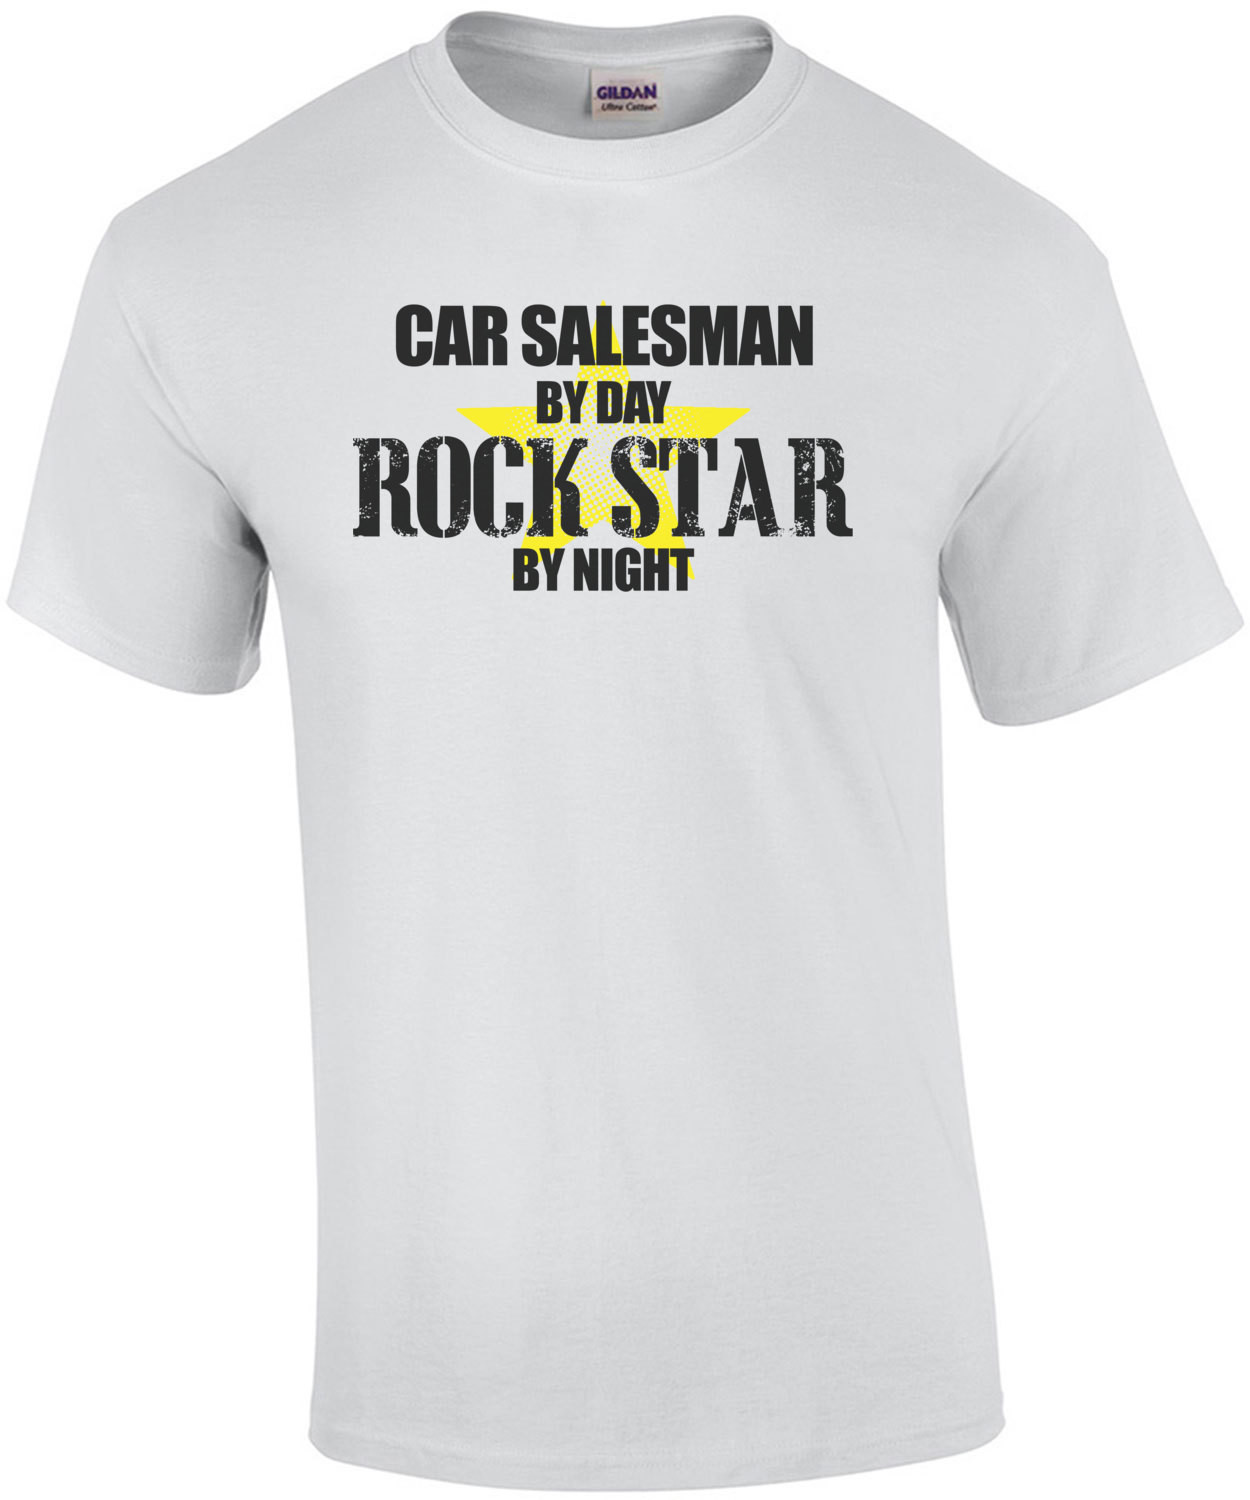 Car Salesman By Day Rock Star By Night T-Shirt